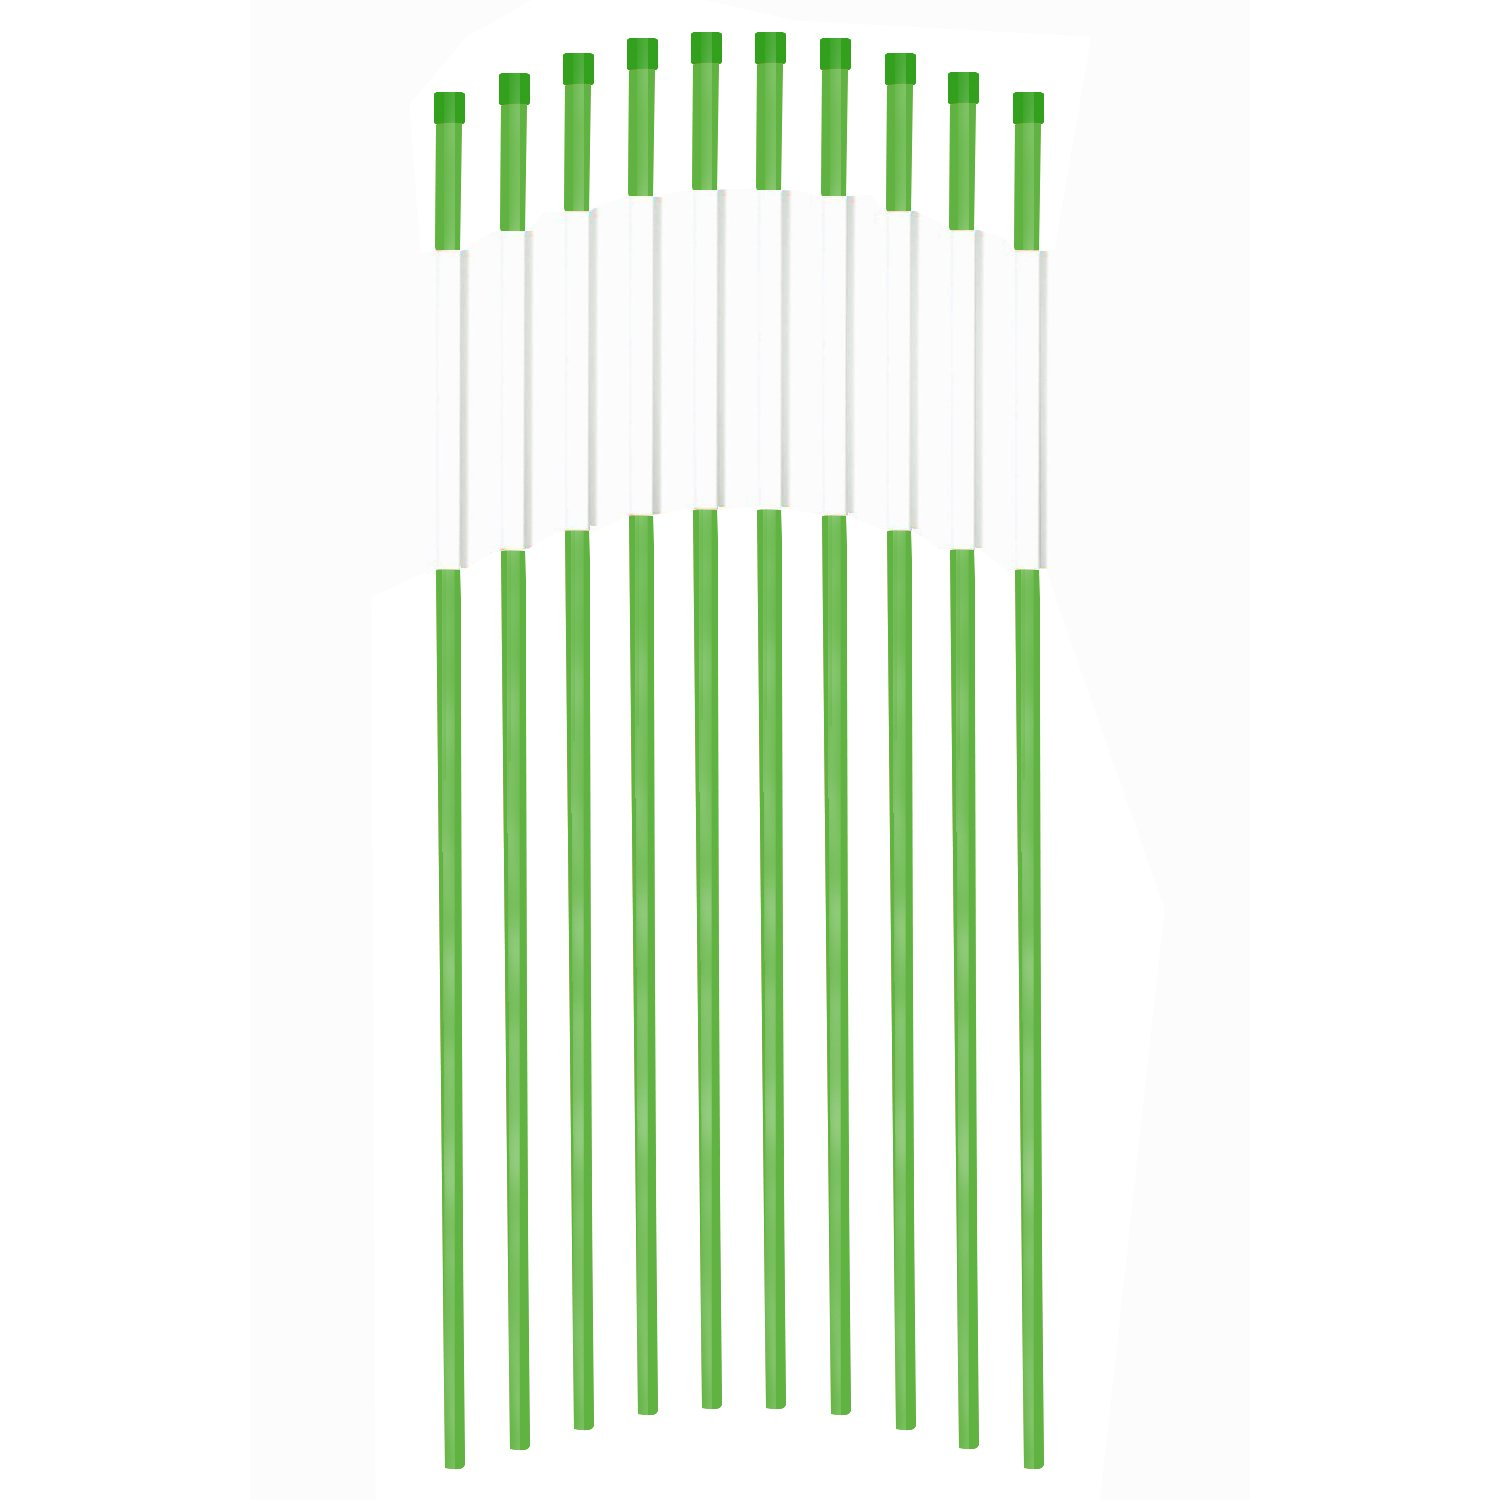 Fibermarker 60Inch Reflective Driveway Markers 5/16Inch Green Solid Driveway Poles for Easy Visibility at Night (100) by FiberMarker (Image #1)